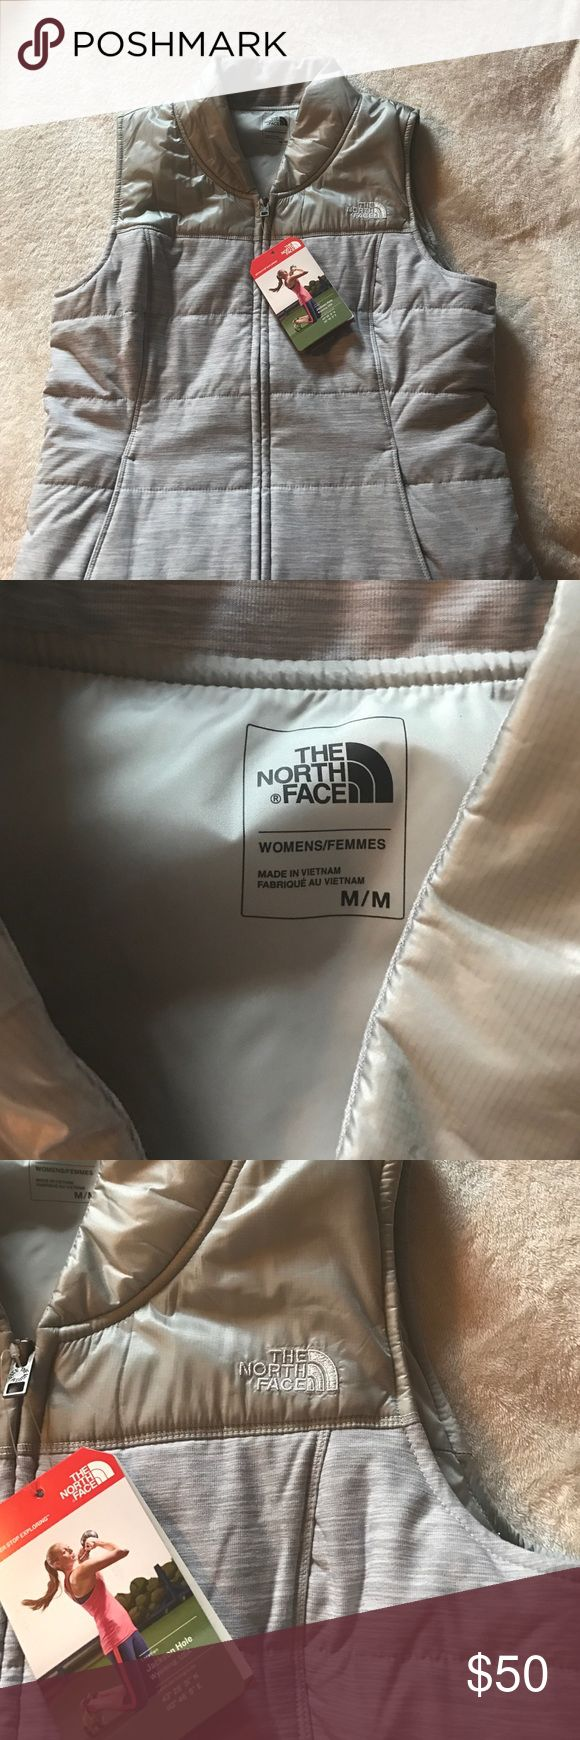 NWT The North Face Vest NWT North face vest! Beautiful gray color! Light weight, perfect for spring!!! The North Face Jackets & Coats